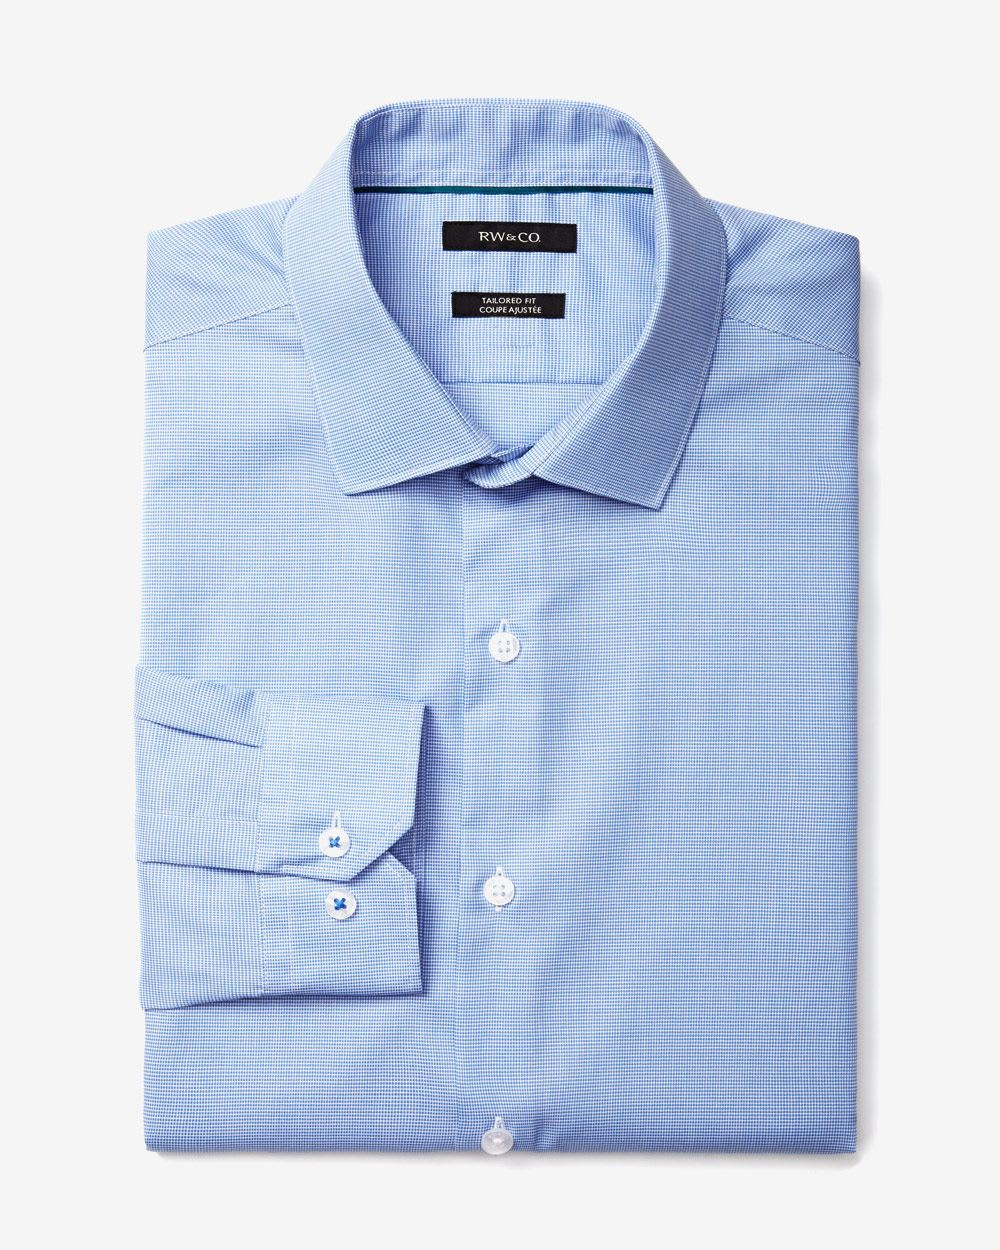 Two tone tailored fit dress shirt rw co for Tailor dress shirt cost